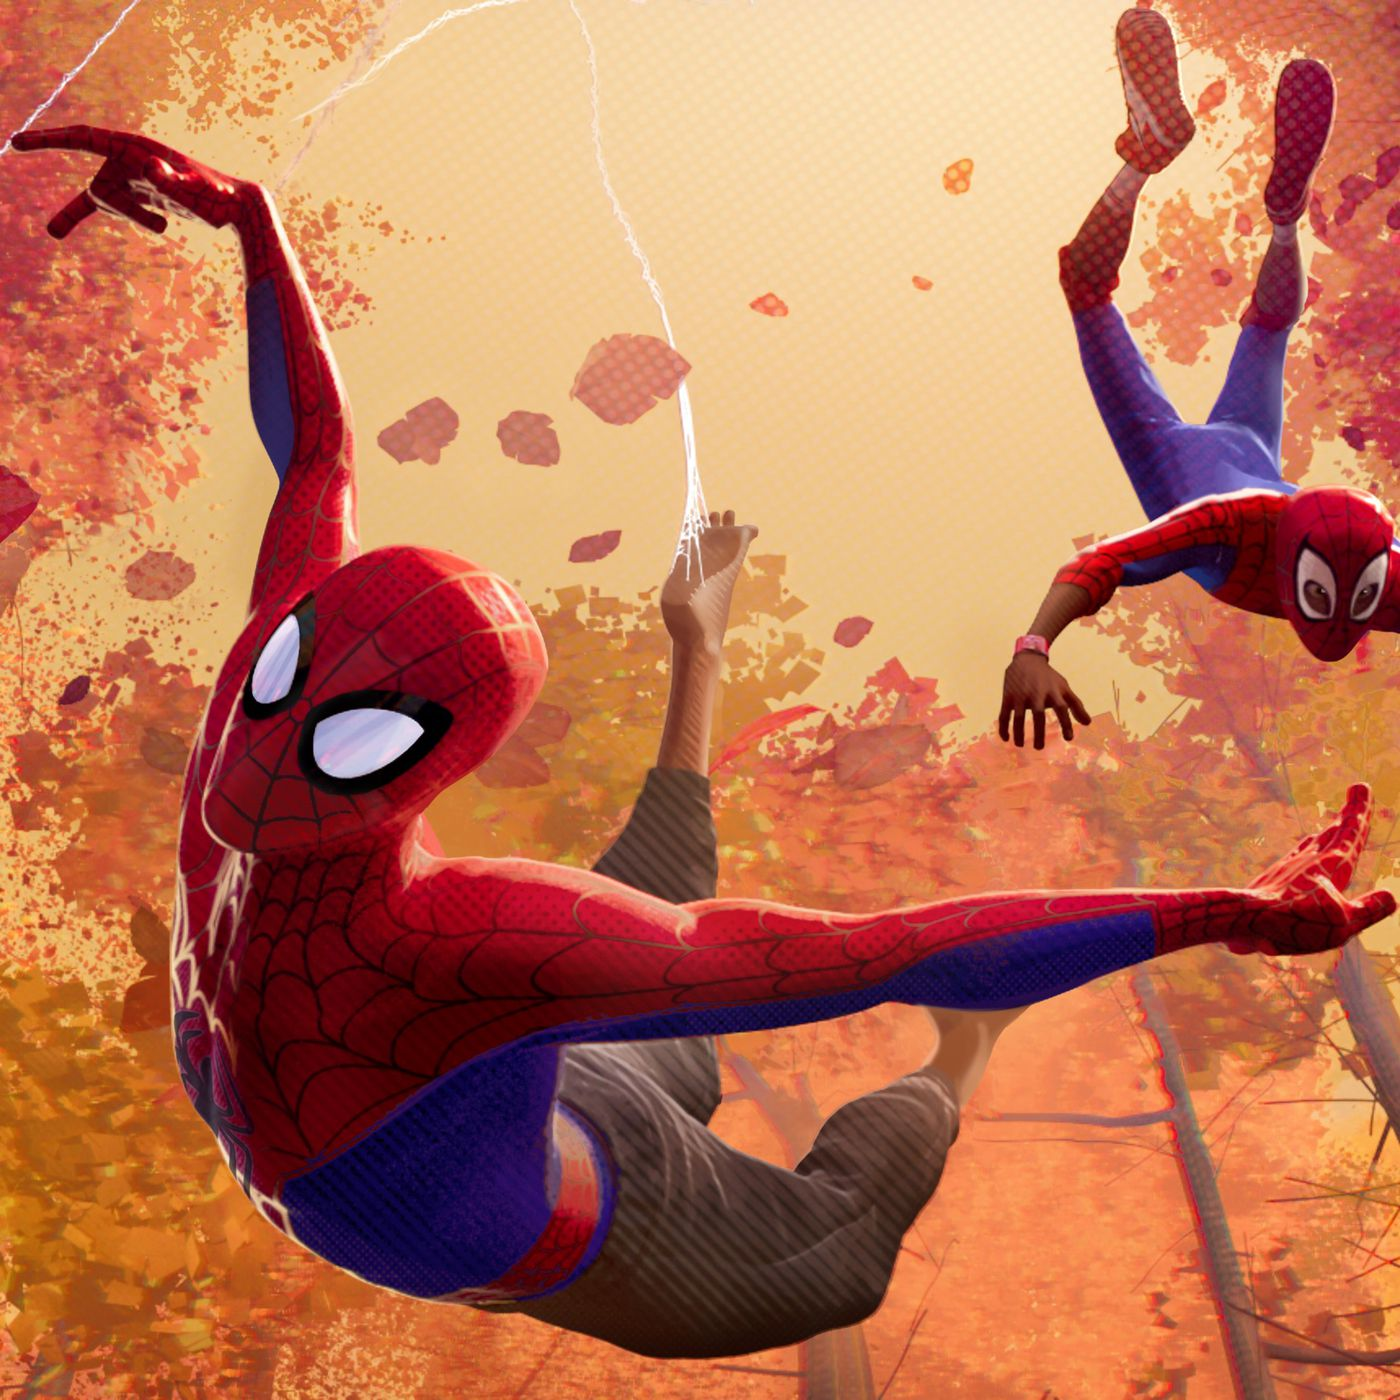 Spidersonas are a joyous celebration of Into the Spider